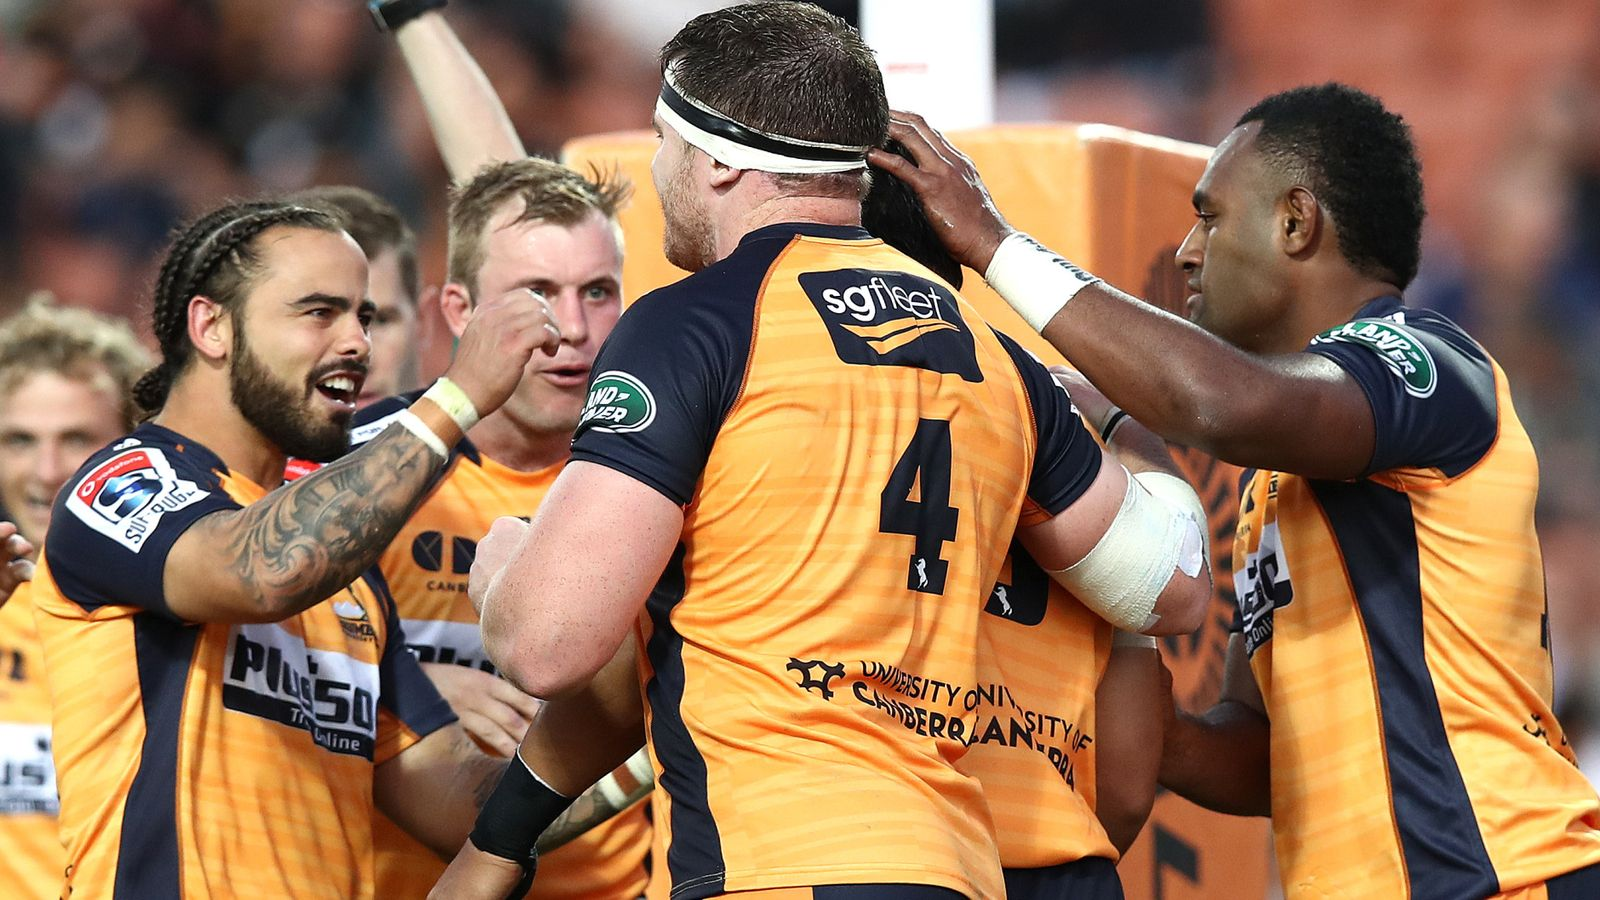 Super Rugby round-up: Brumbies win at Chiefs, Sharks at Rebels